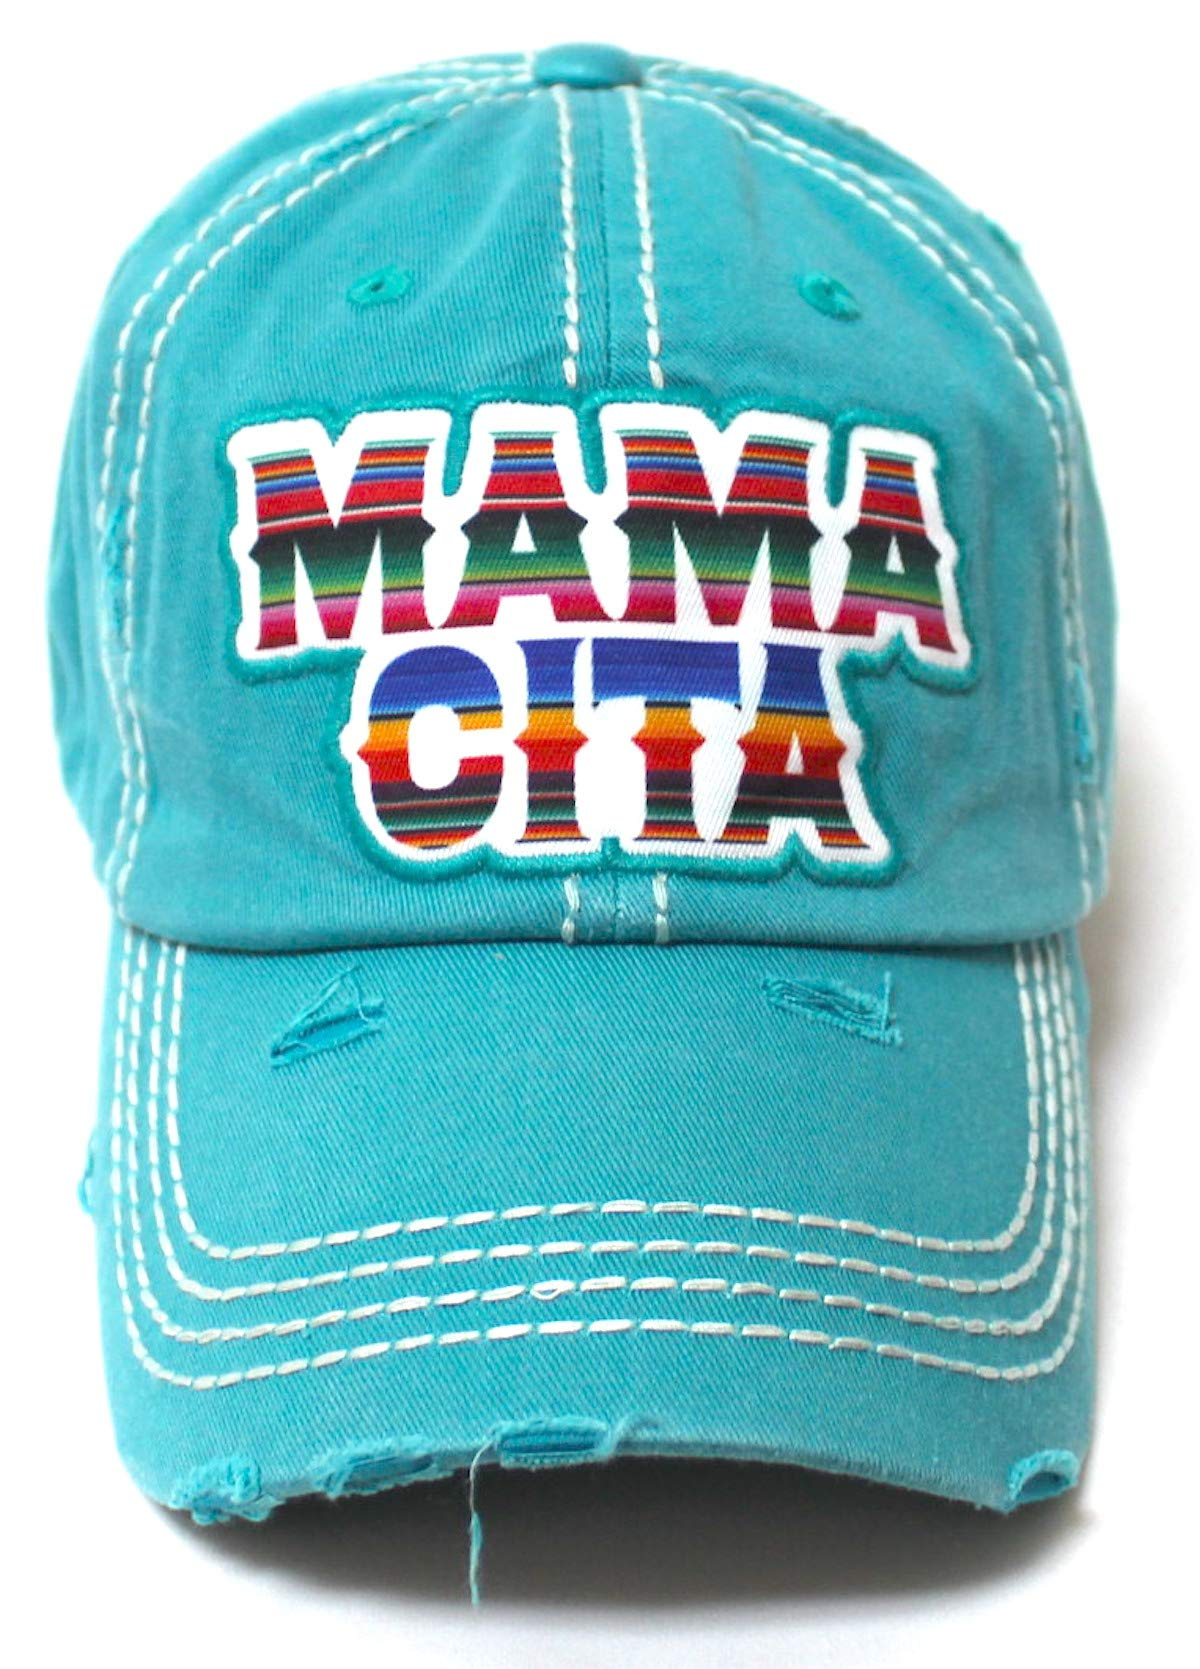 Women's Serape Themed Mamacita Monogram Embroidery Distressed Ballcap, Vintage Turquoise - Caps 'N Vintage